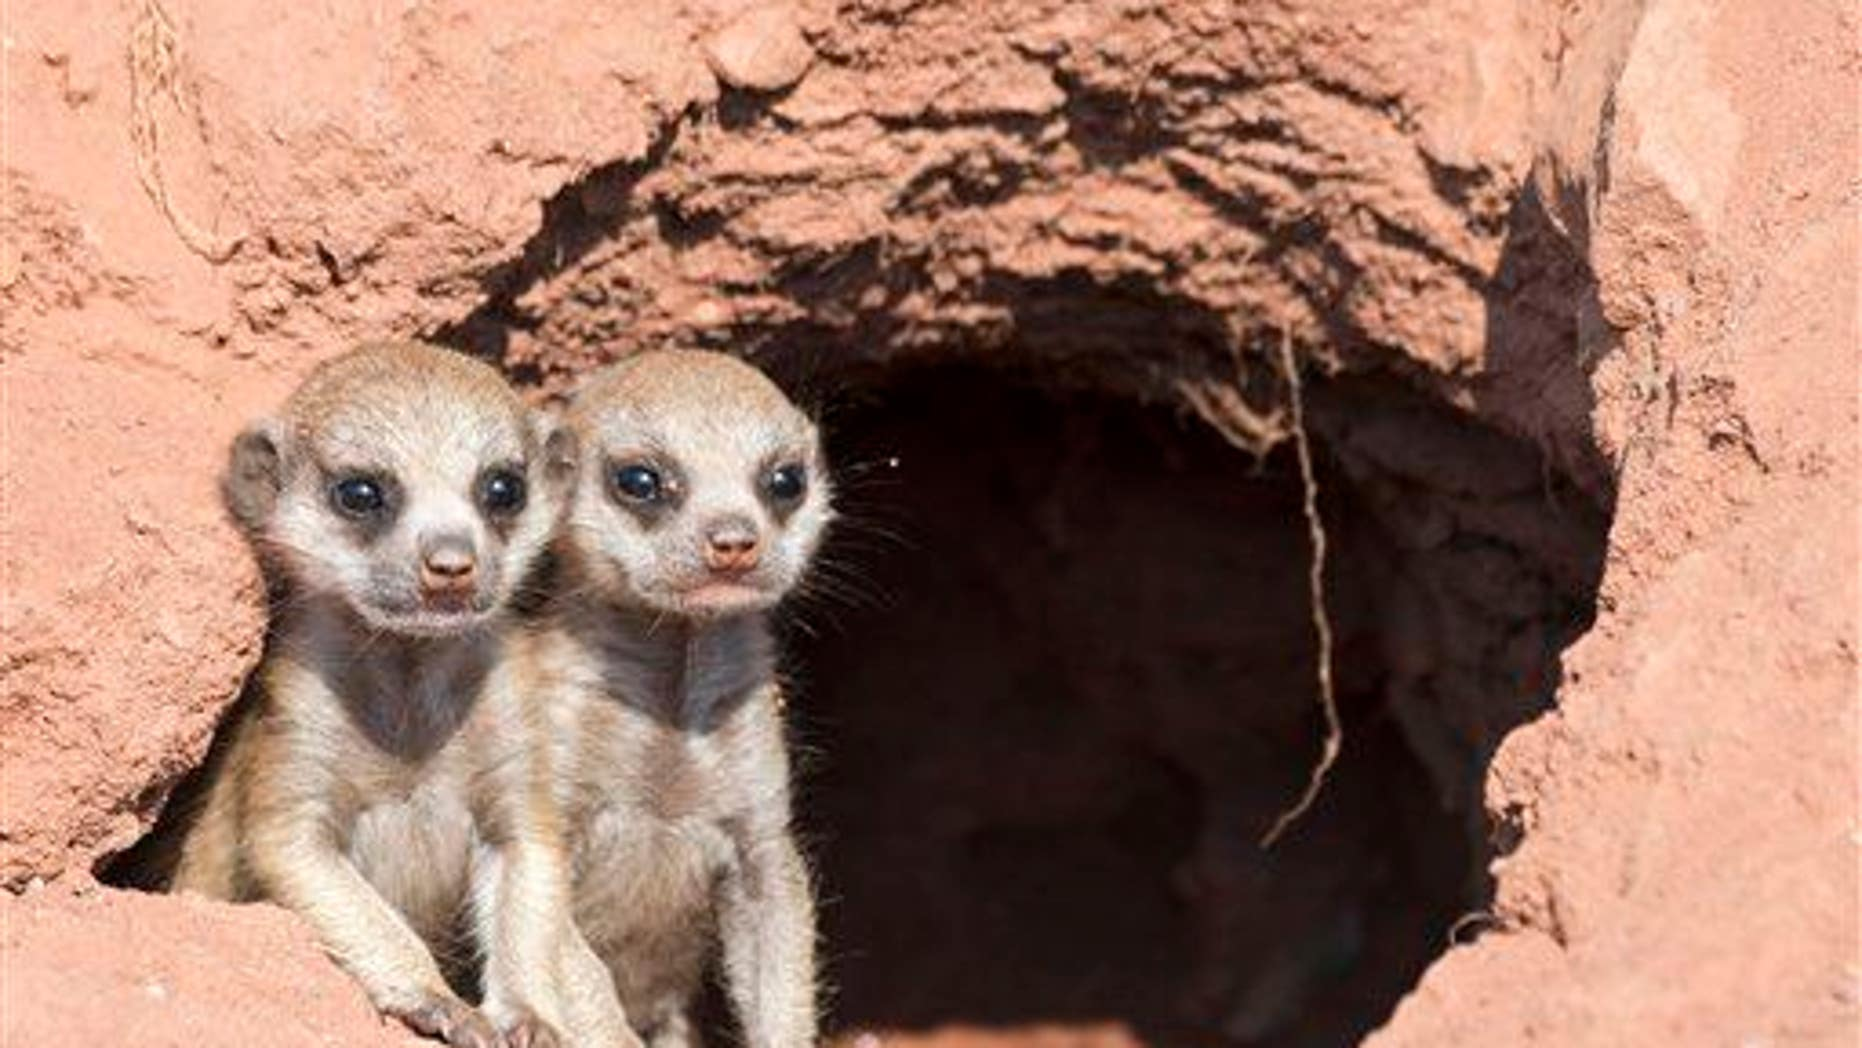 They look cute, but meerkats are most species most prone to lethal violence, a new study found.